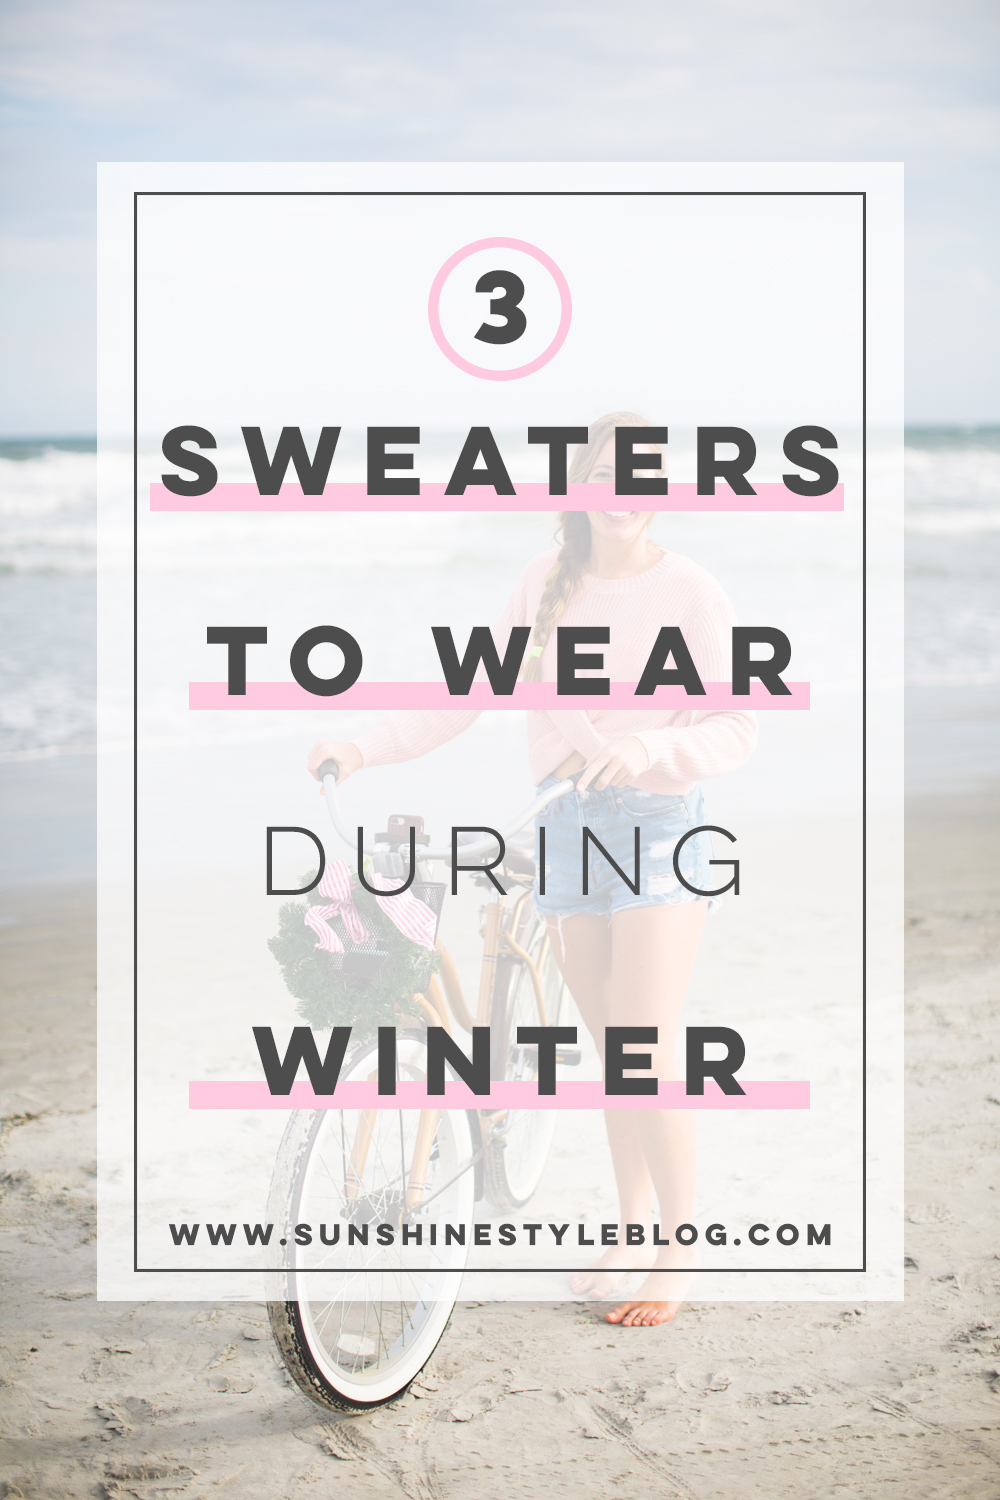 Sweaters to Wear During Winter | Sweaters to Wear During the Holidays | Winter Outfit Idea | Winter Sweather Outfit - More on www.sunshinestyleblog.com